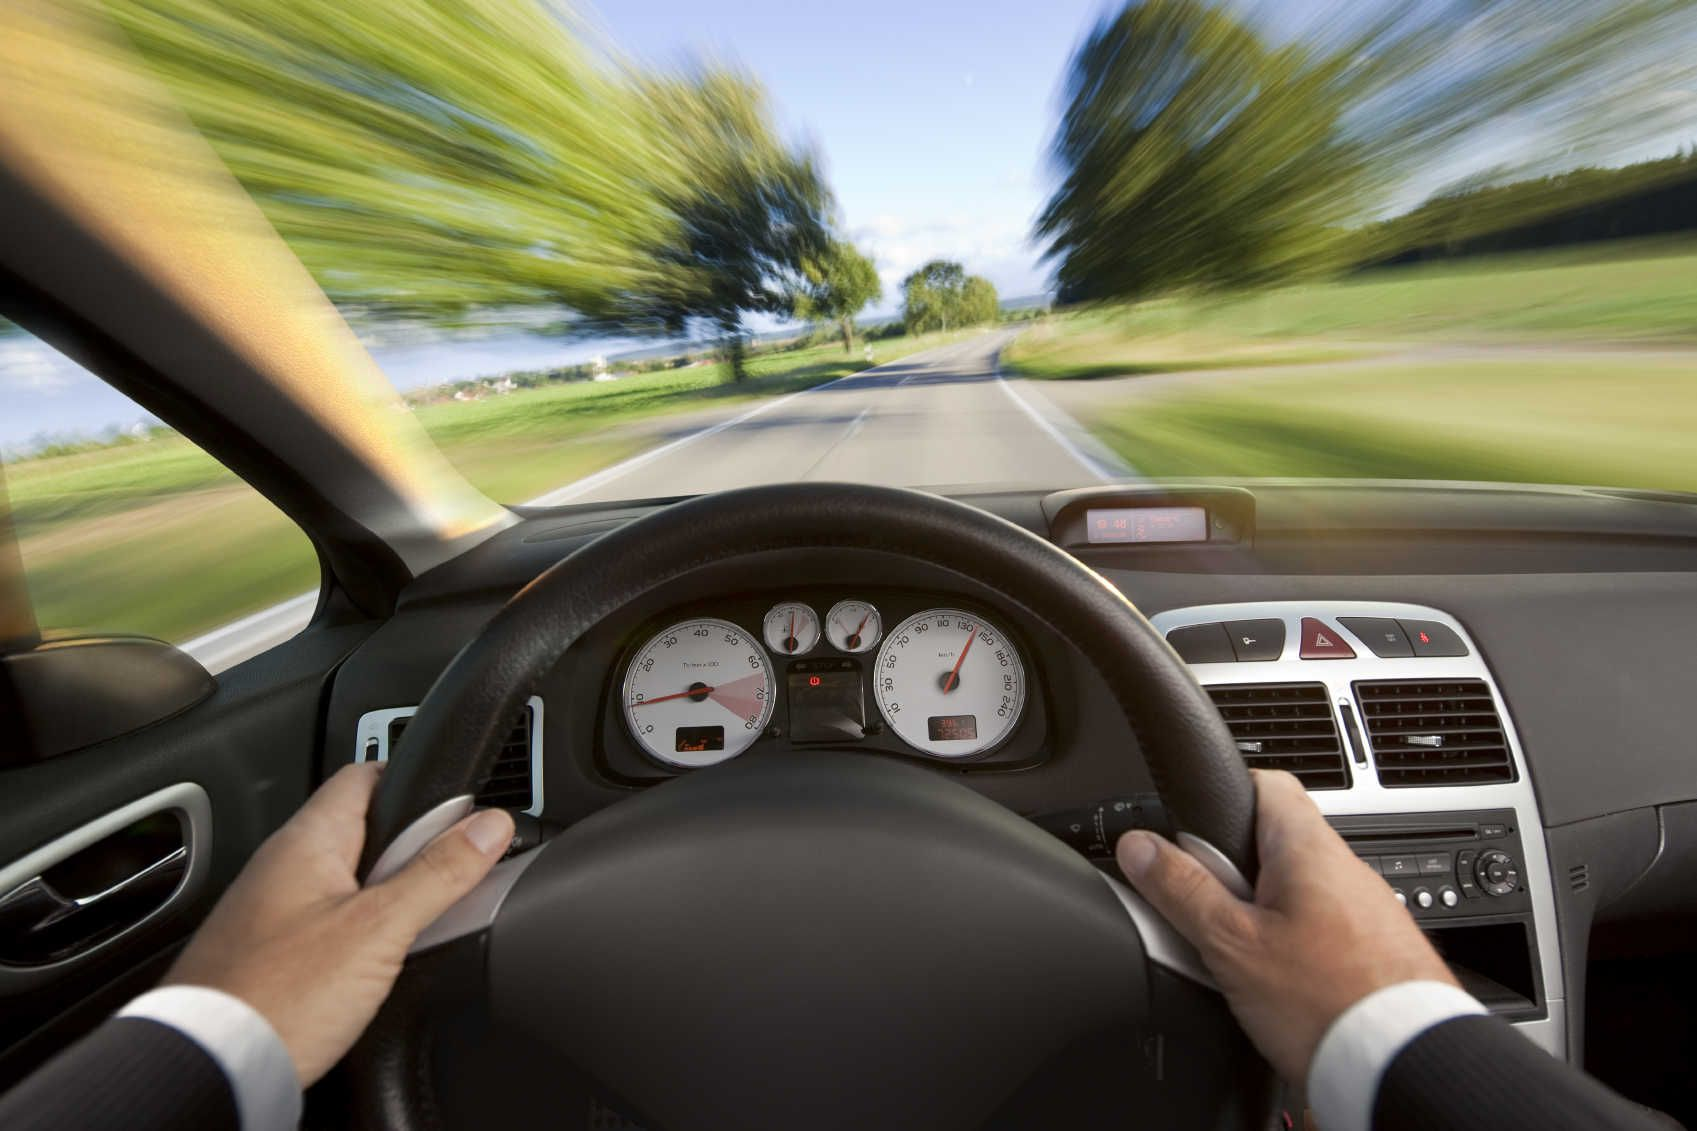 You can be specific in choosing your kind of driving school in Toronto, I mean from race car driving schools to good truck driving schools, you get to learn both theory and practical lessons accordingly.